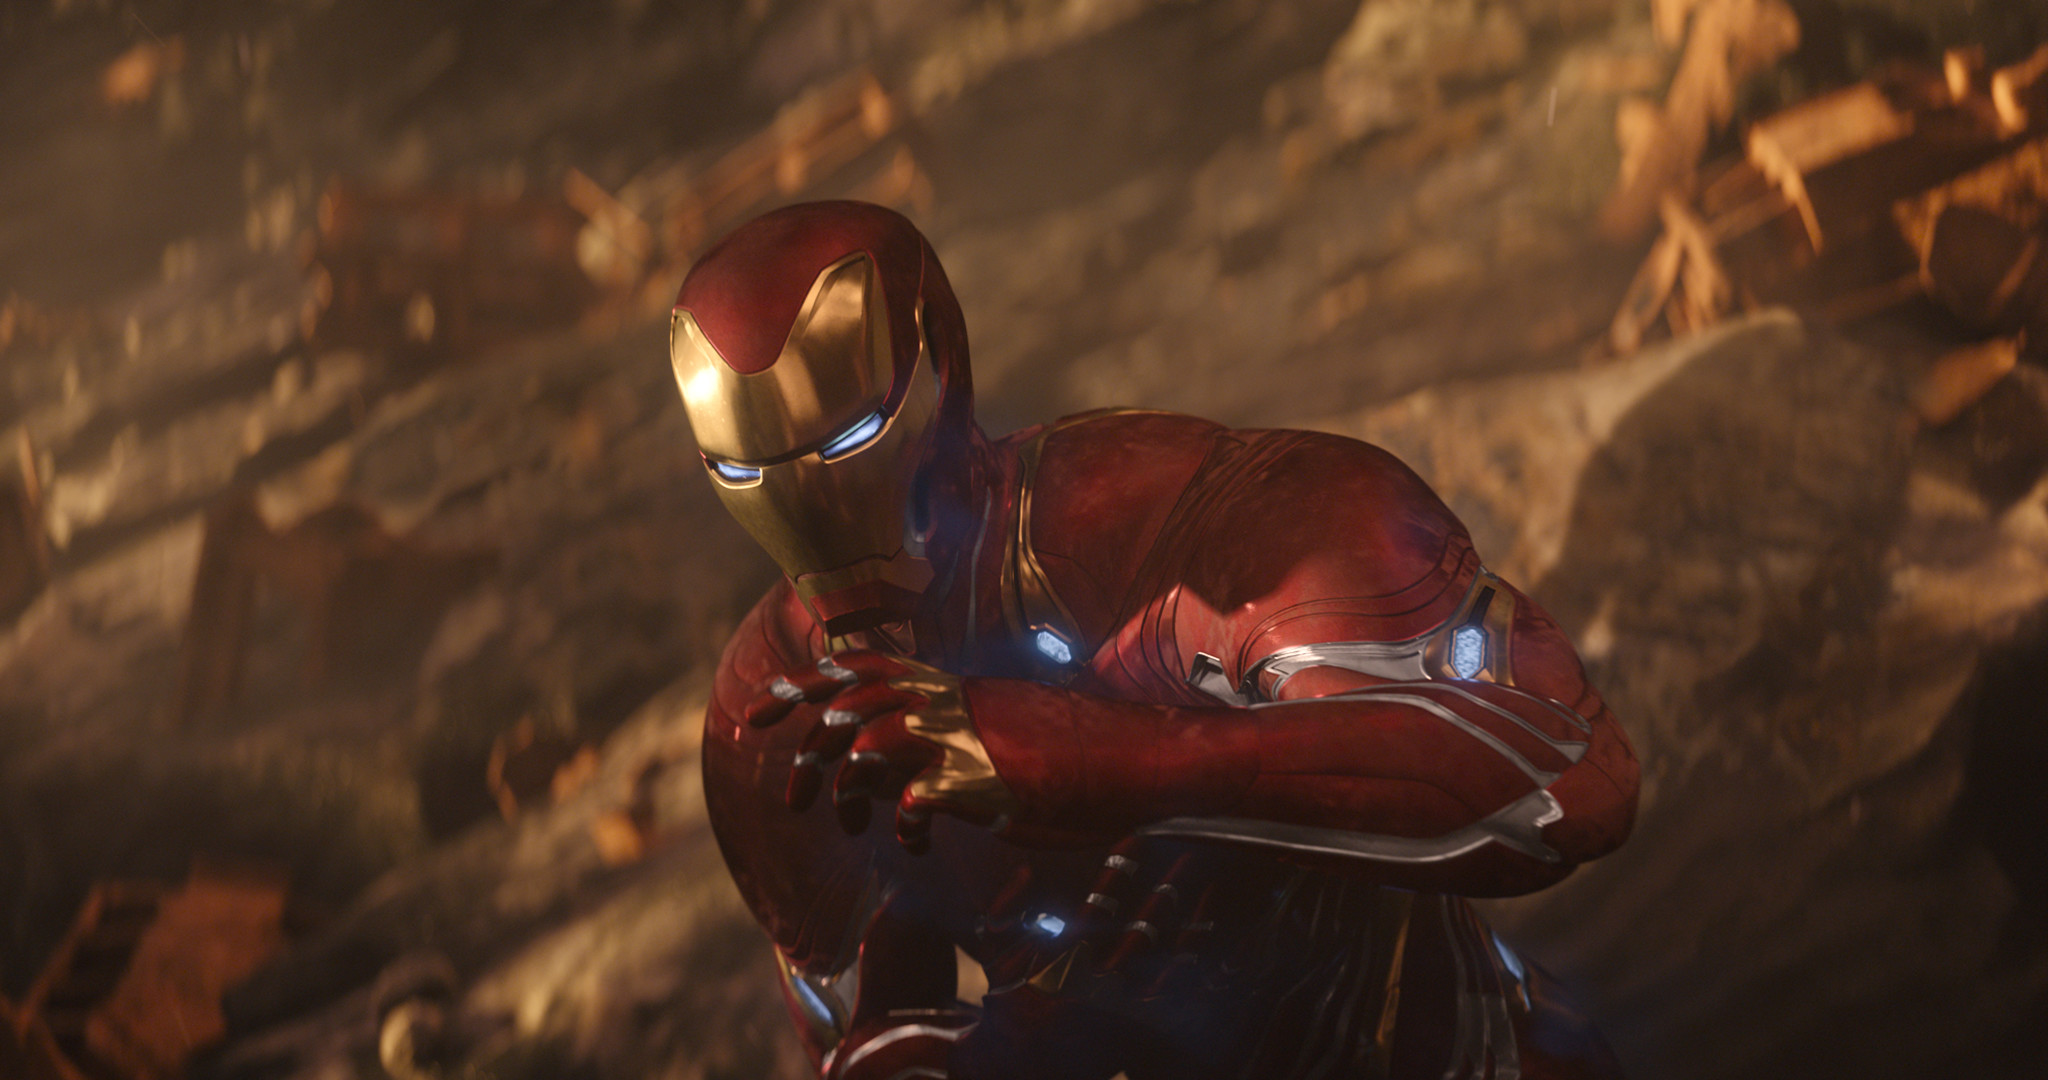 2048x1080 Iron Man New Suit For Avengers Infinity War 2018